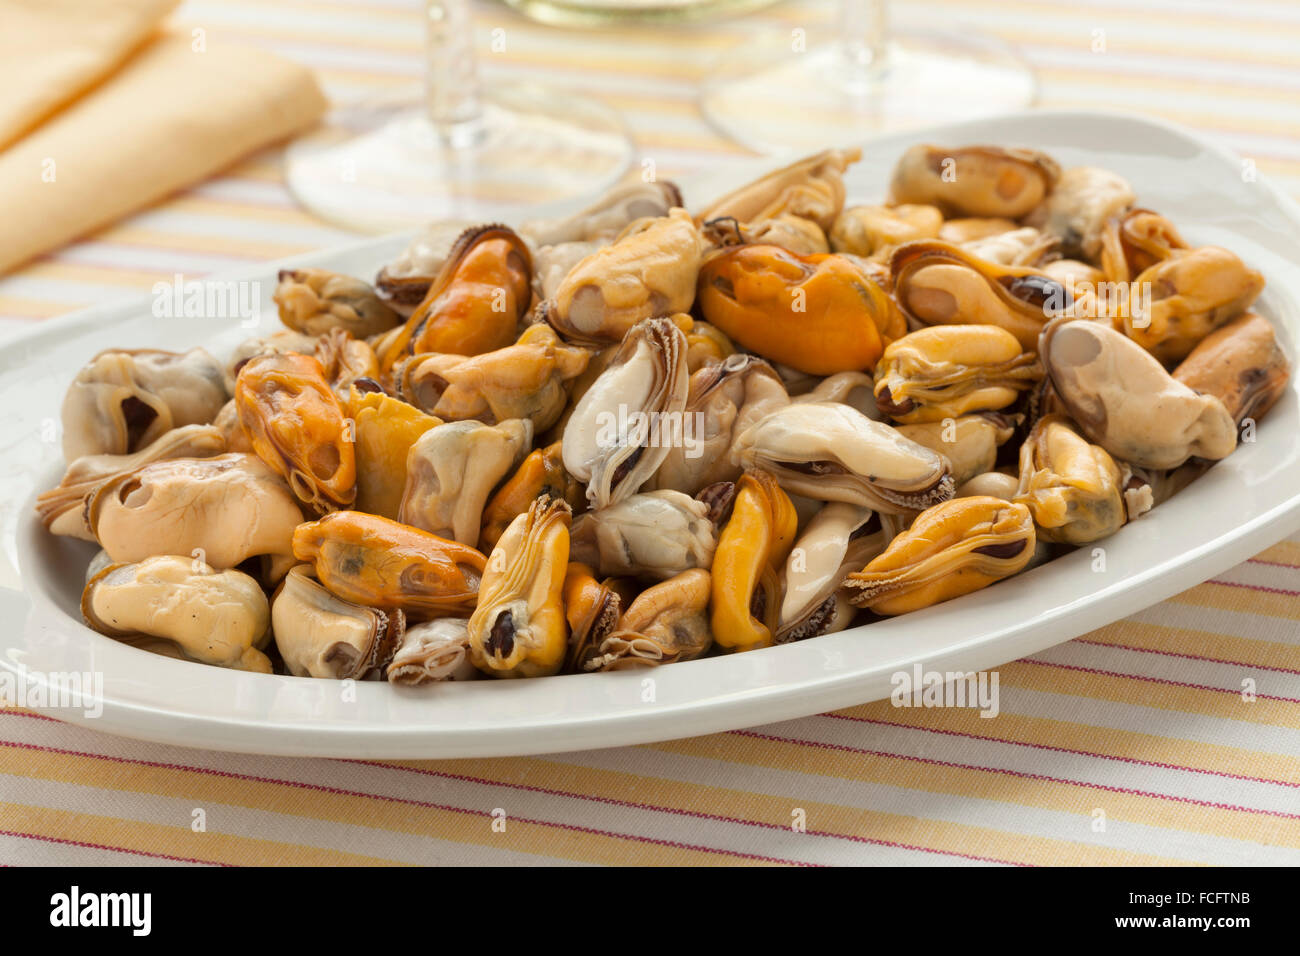 Dish with fresh cooked mussels ready to eat - Stock Image